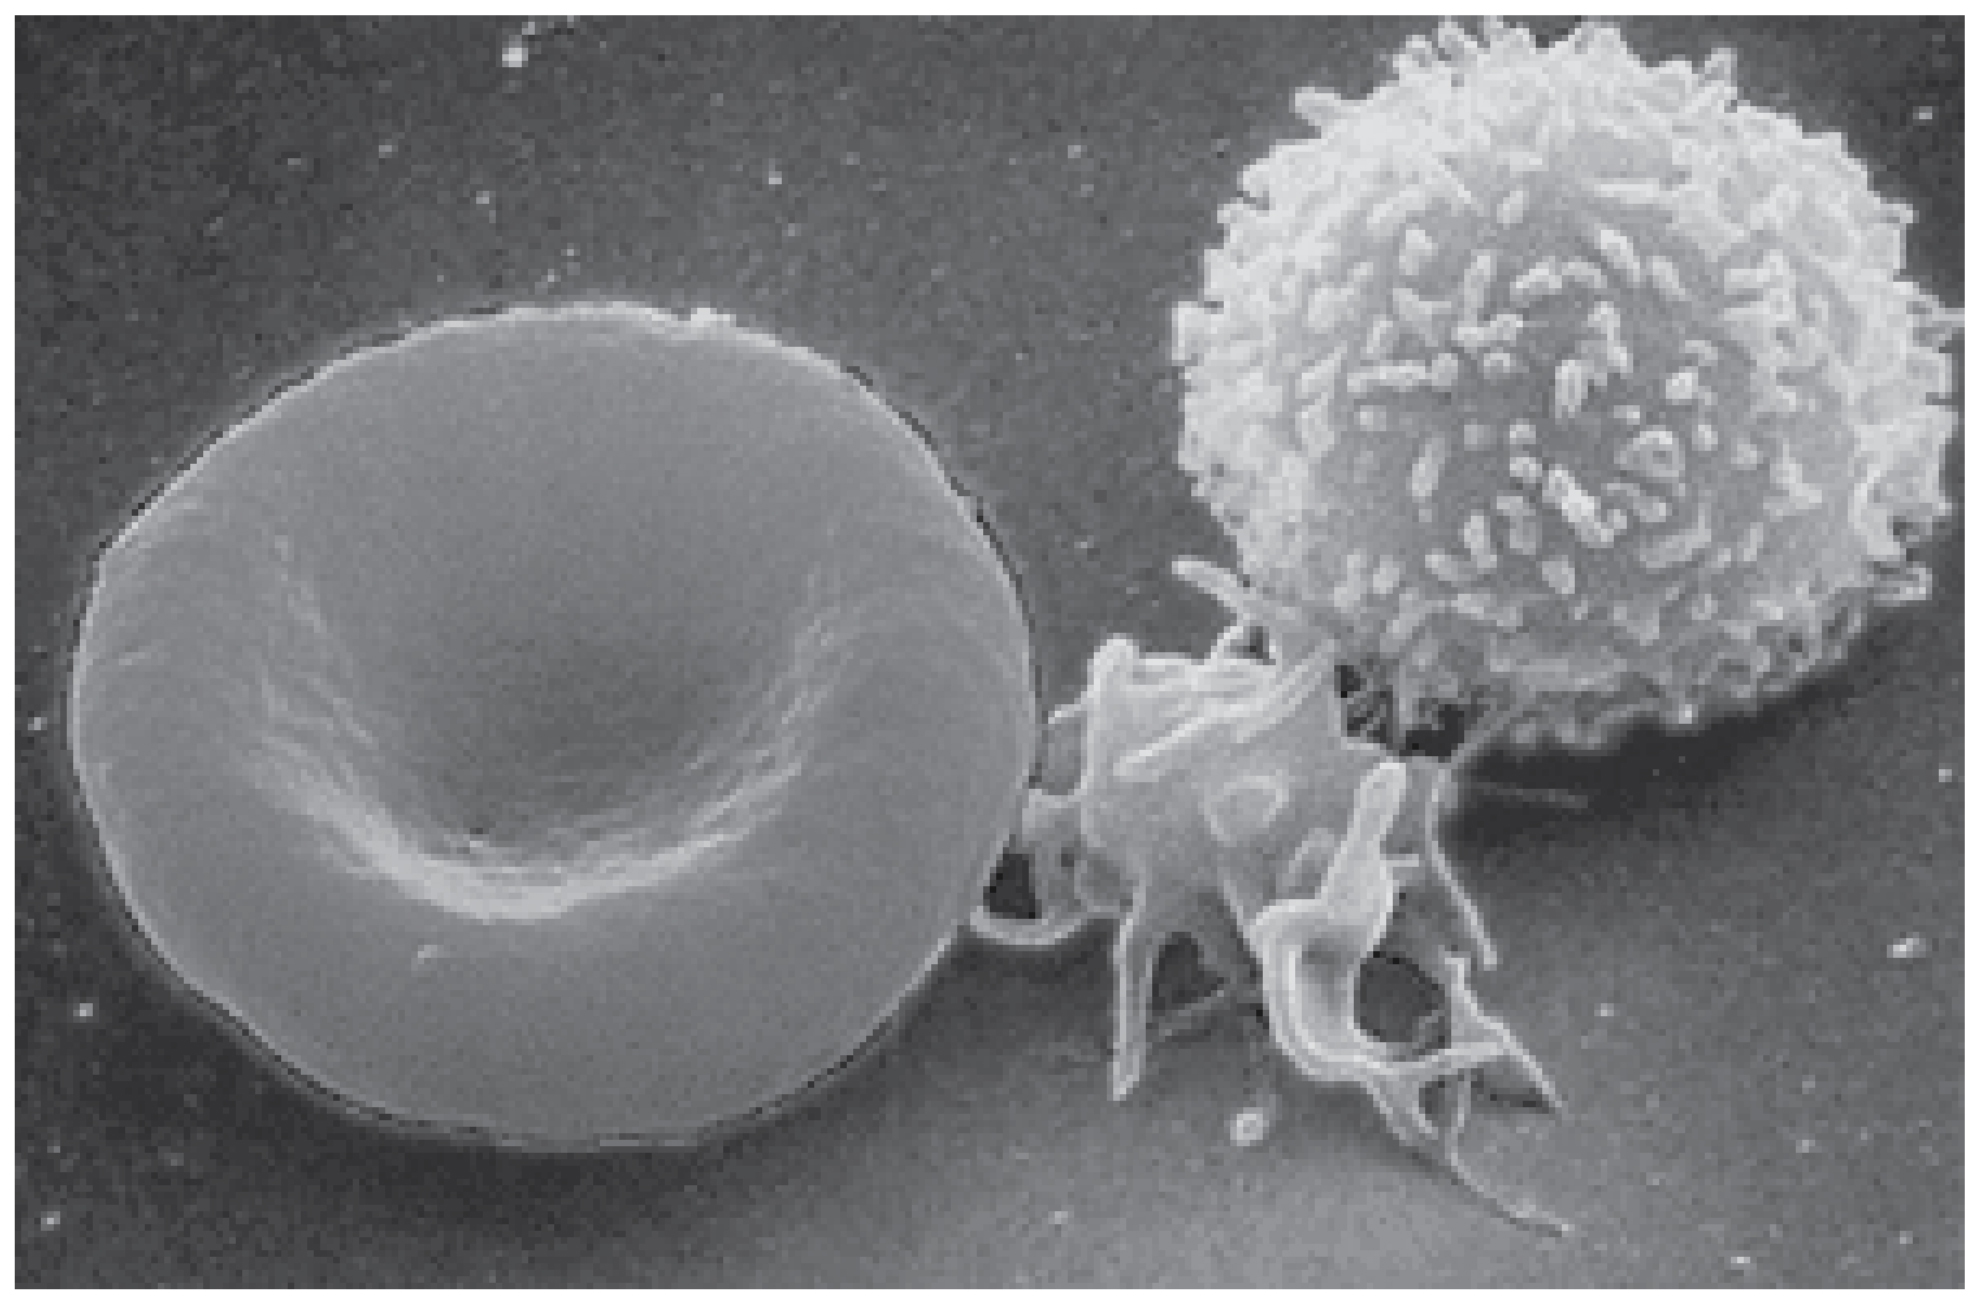 This photo shows a red blood cell and a white blood cell.